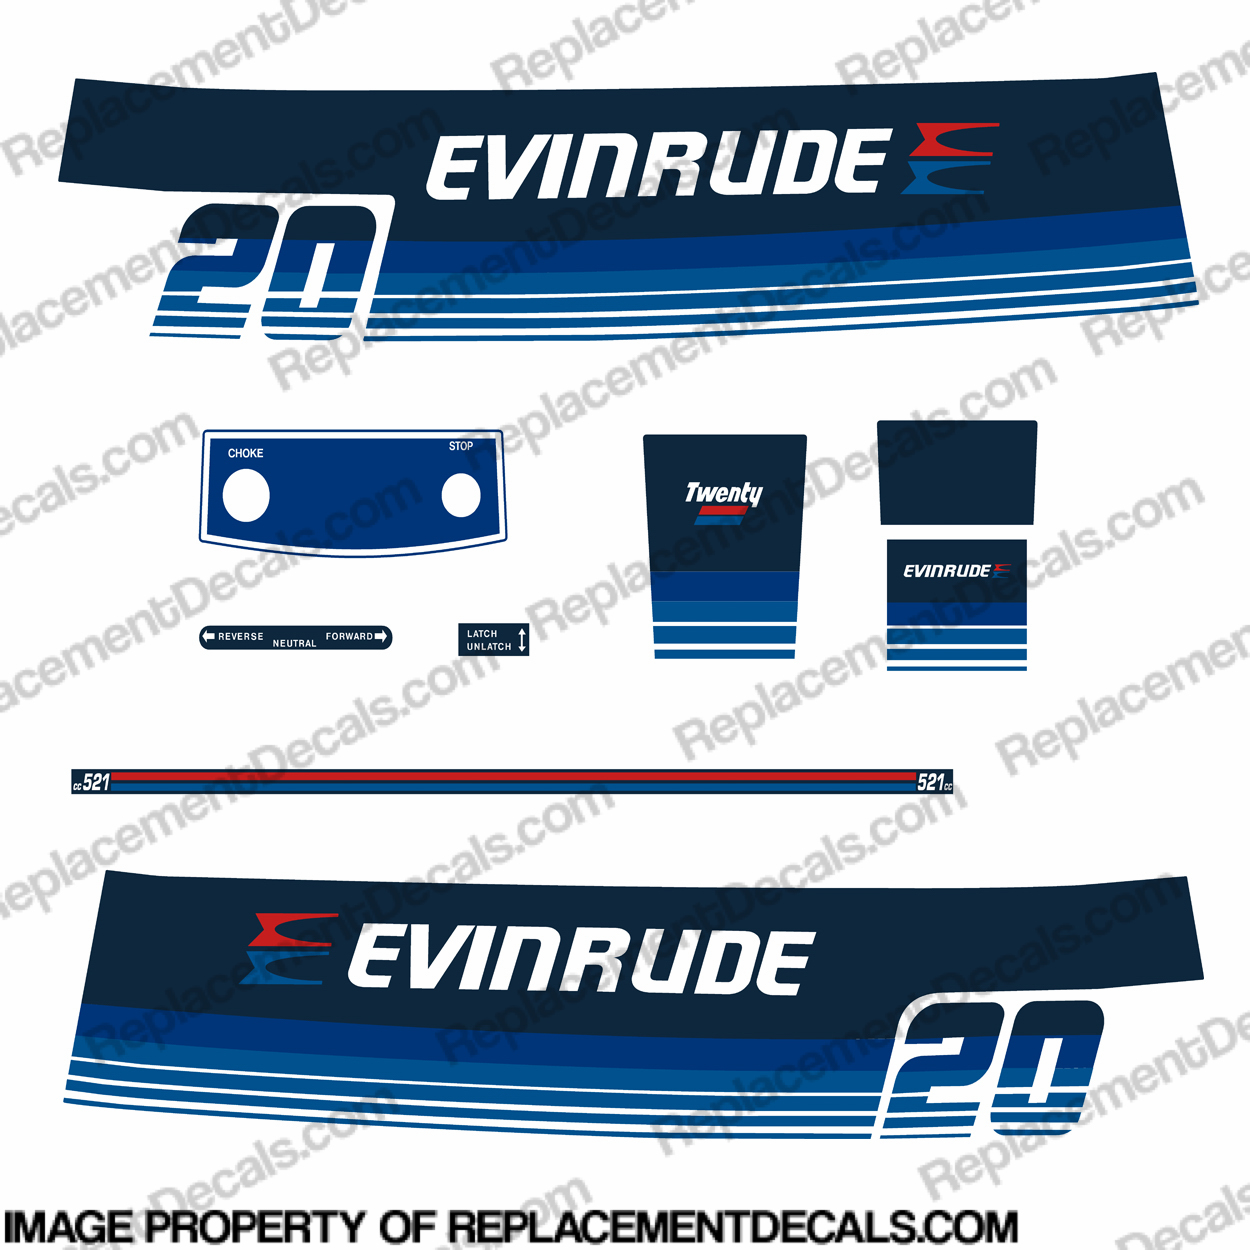 Evinrude 1979 20hp Decal Kit